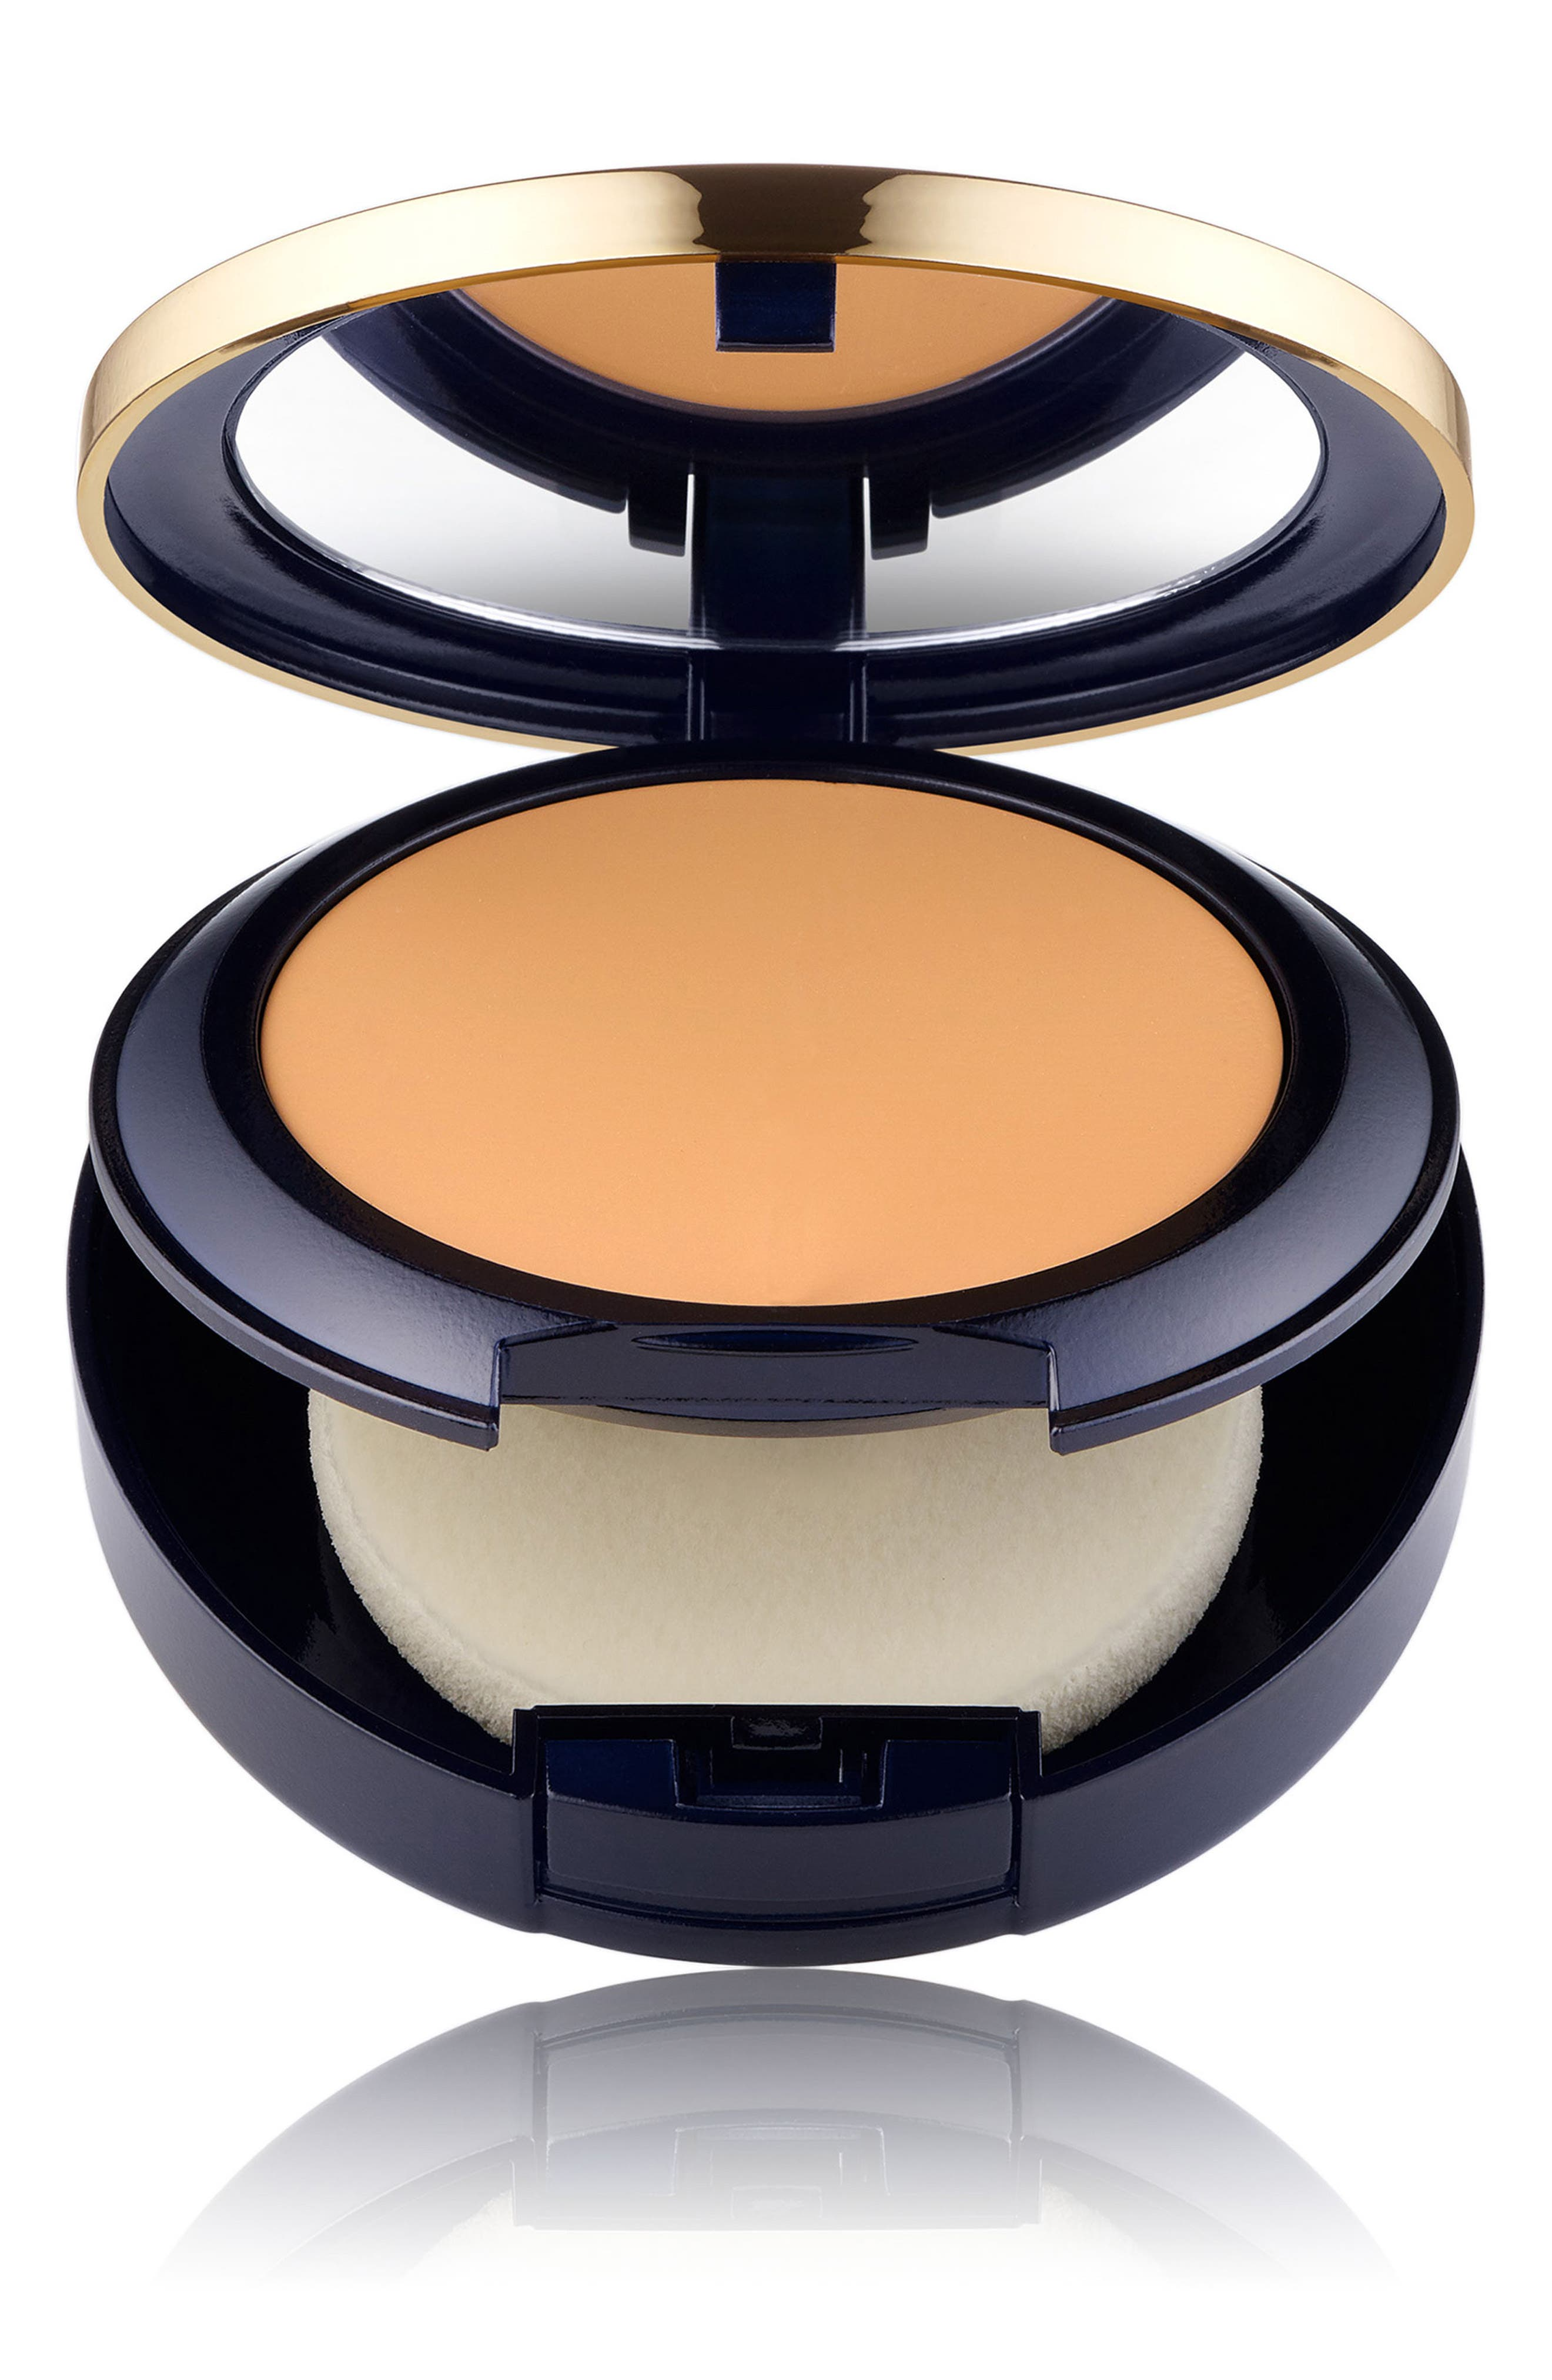 Estee Lauder Double Wear Stay In Place Matte Powder Foundation - 6C1 Rich Cocoa